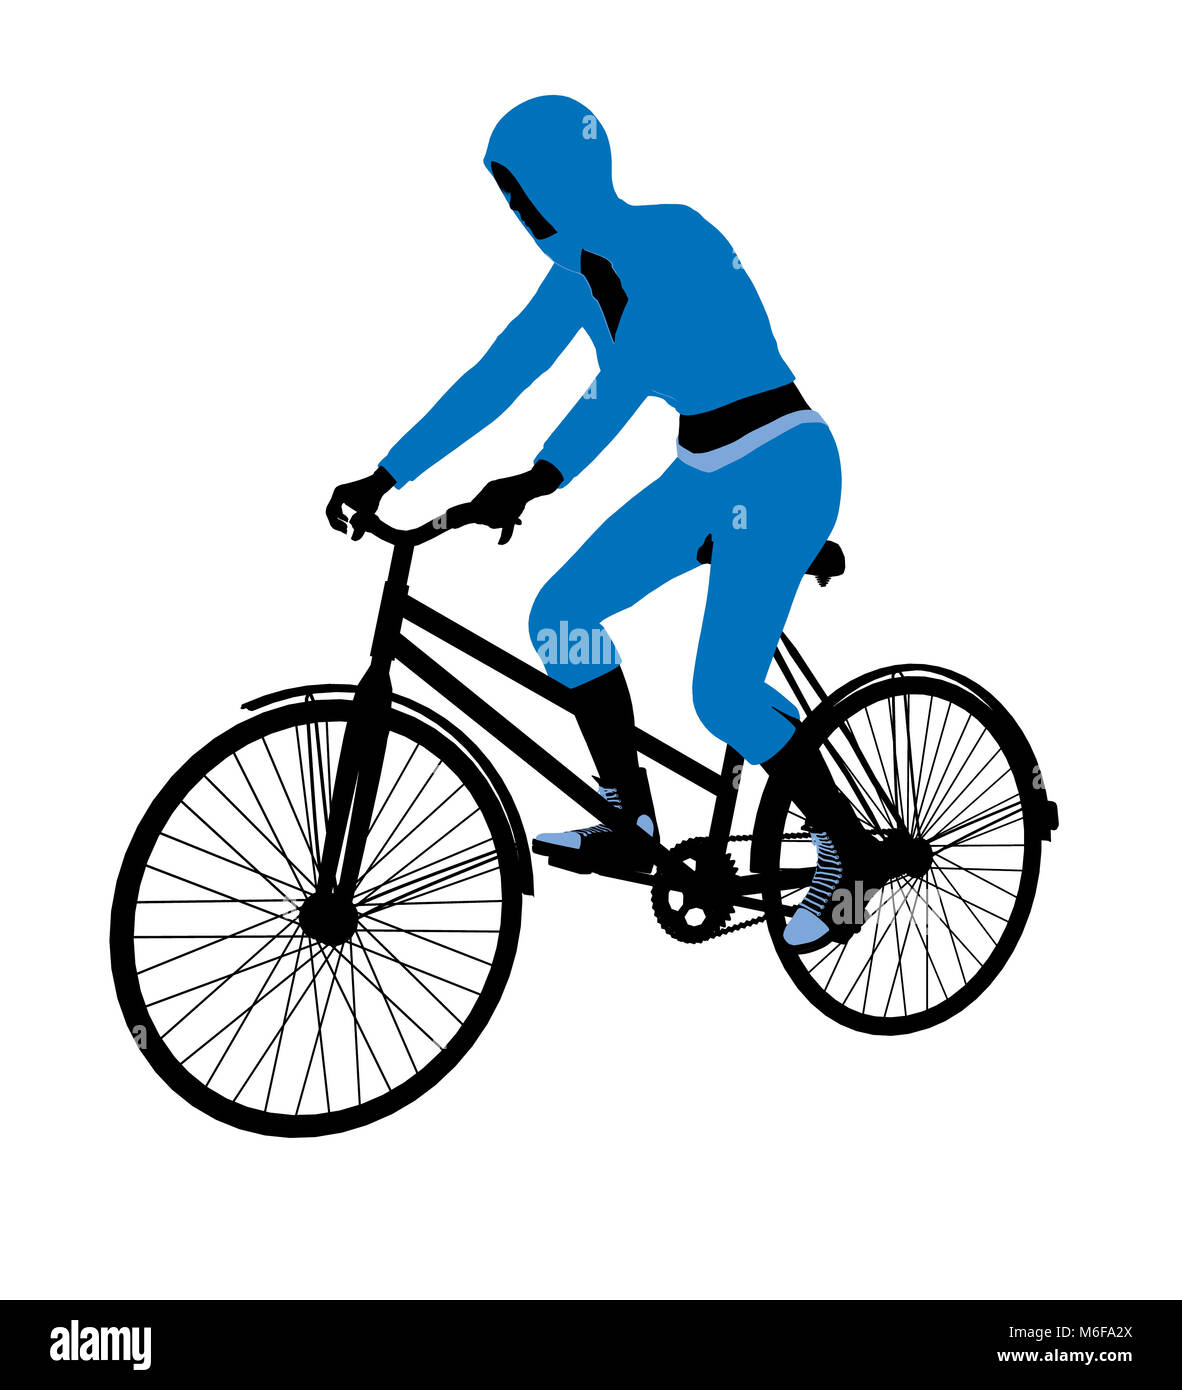 Female bicycle rider silhouette in a blue outfit on a white background - Stock Image